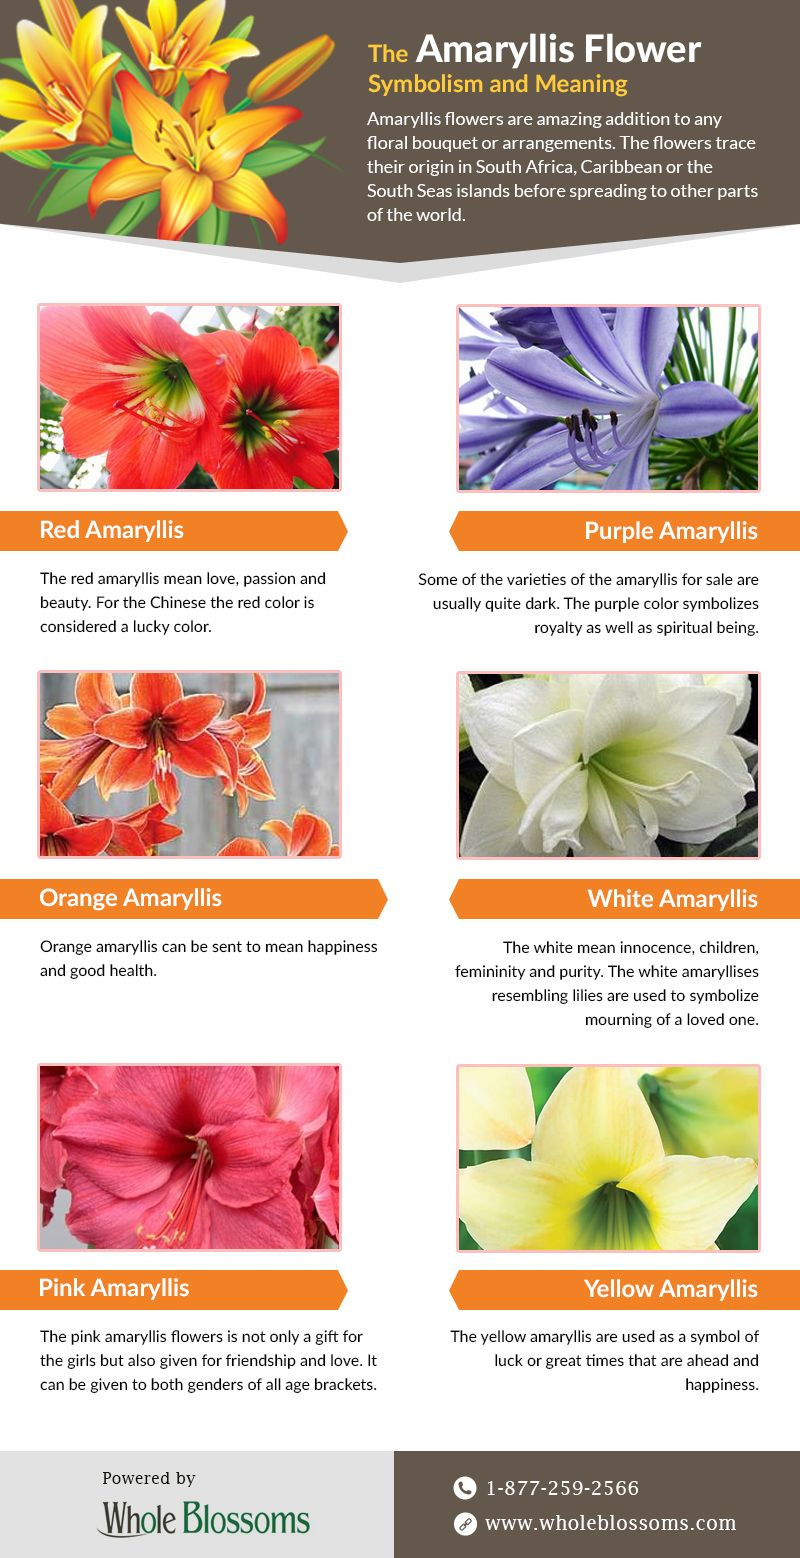 How To Find Amaryllis Flower Symbolism And Meaning In 2020 Amaryllis Flowers Amaryllis Wedding Flowers